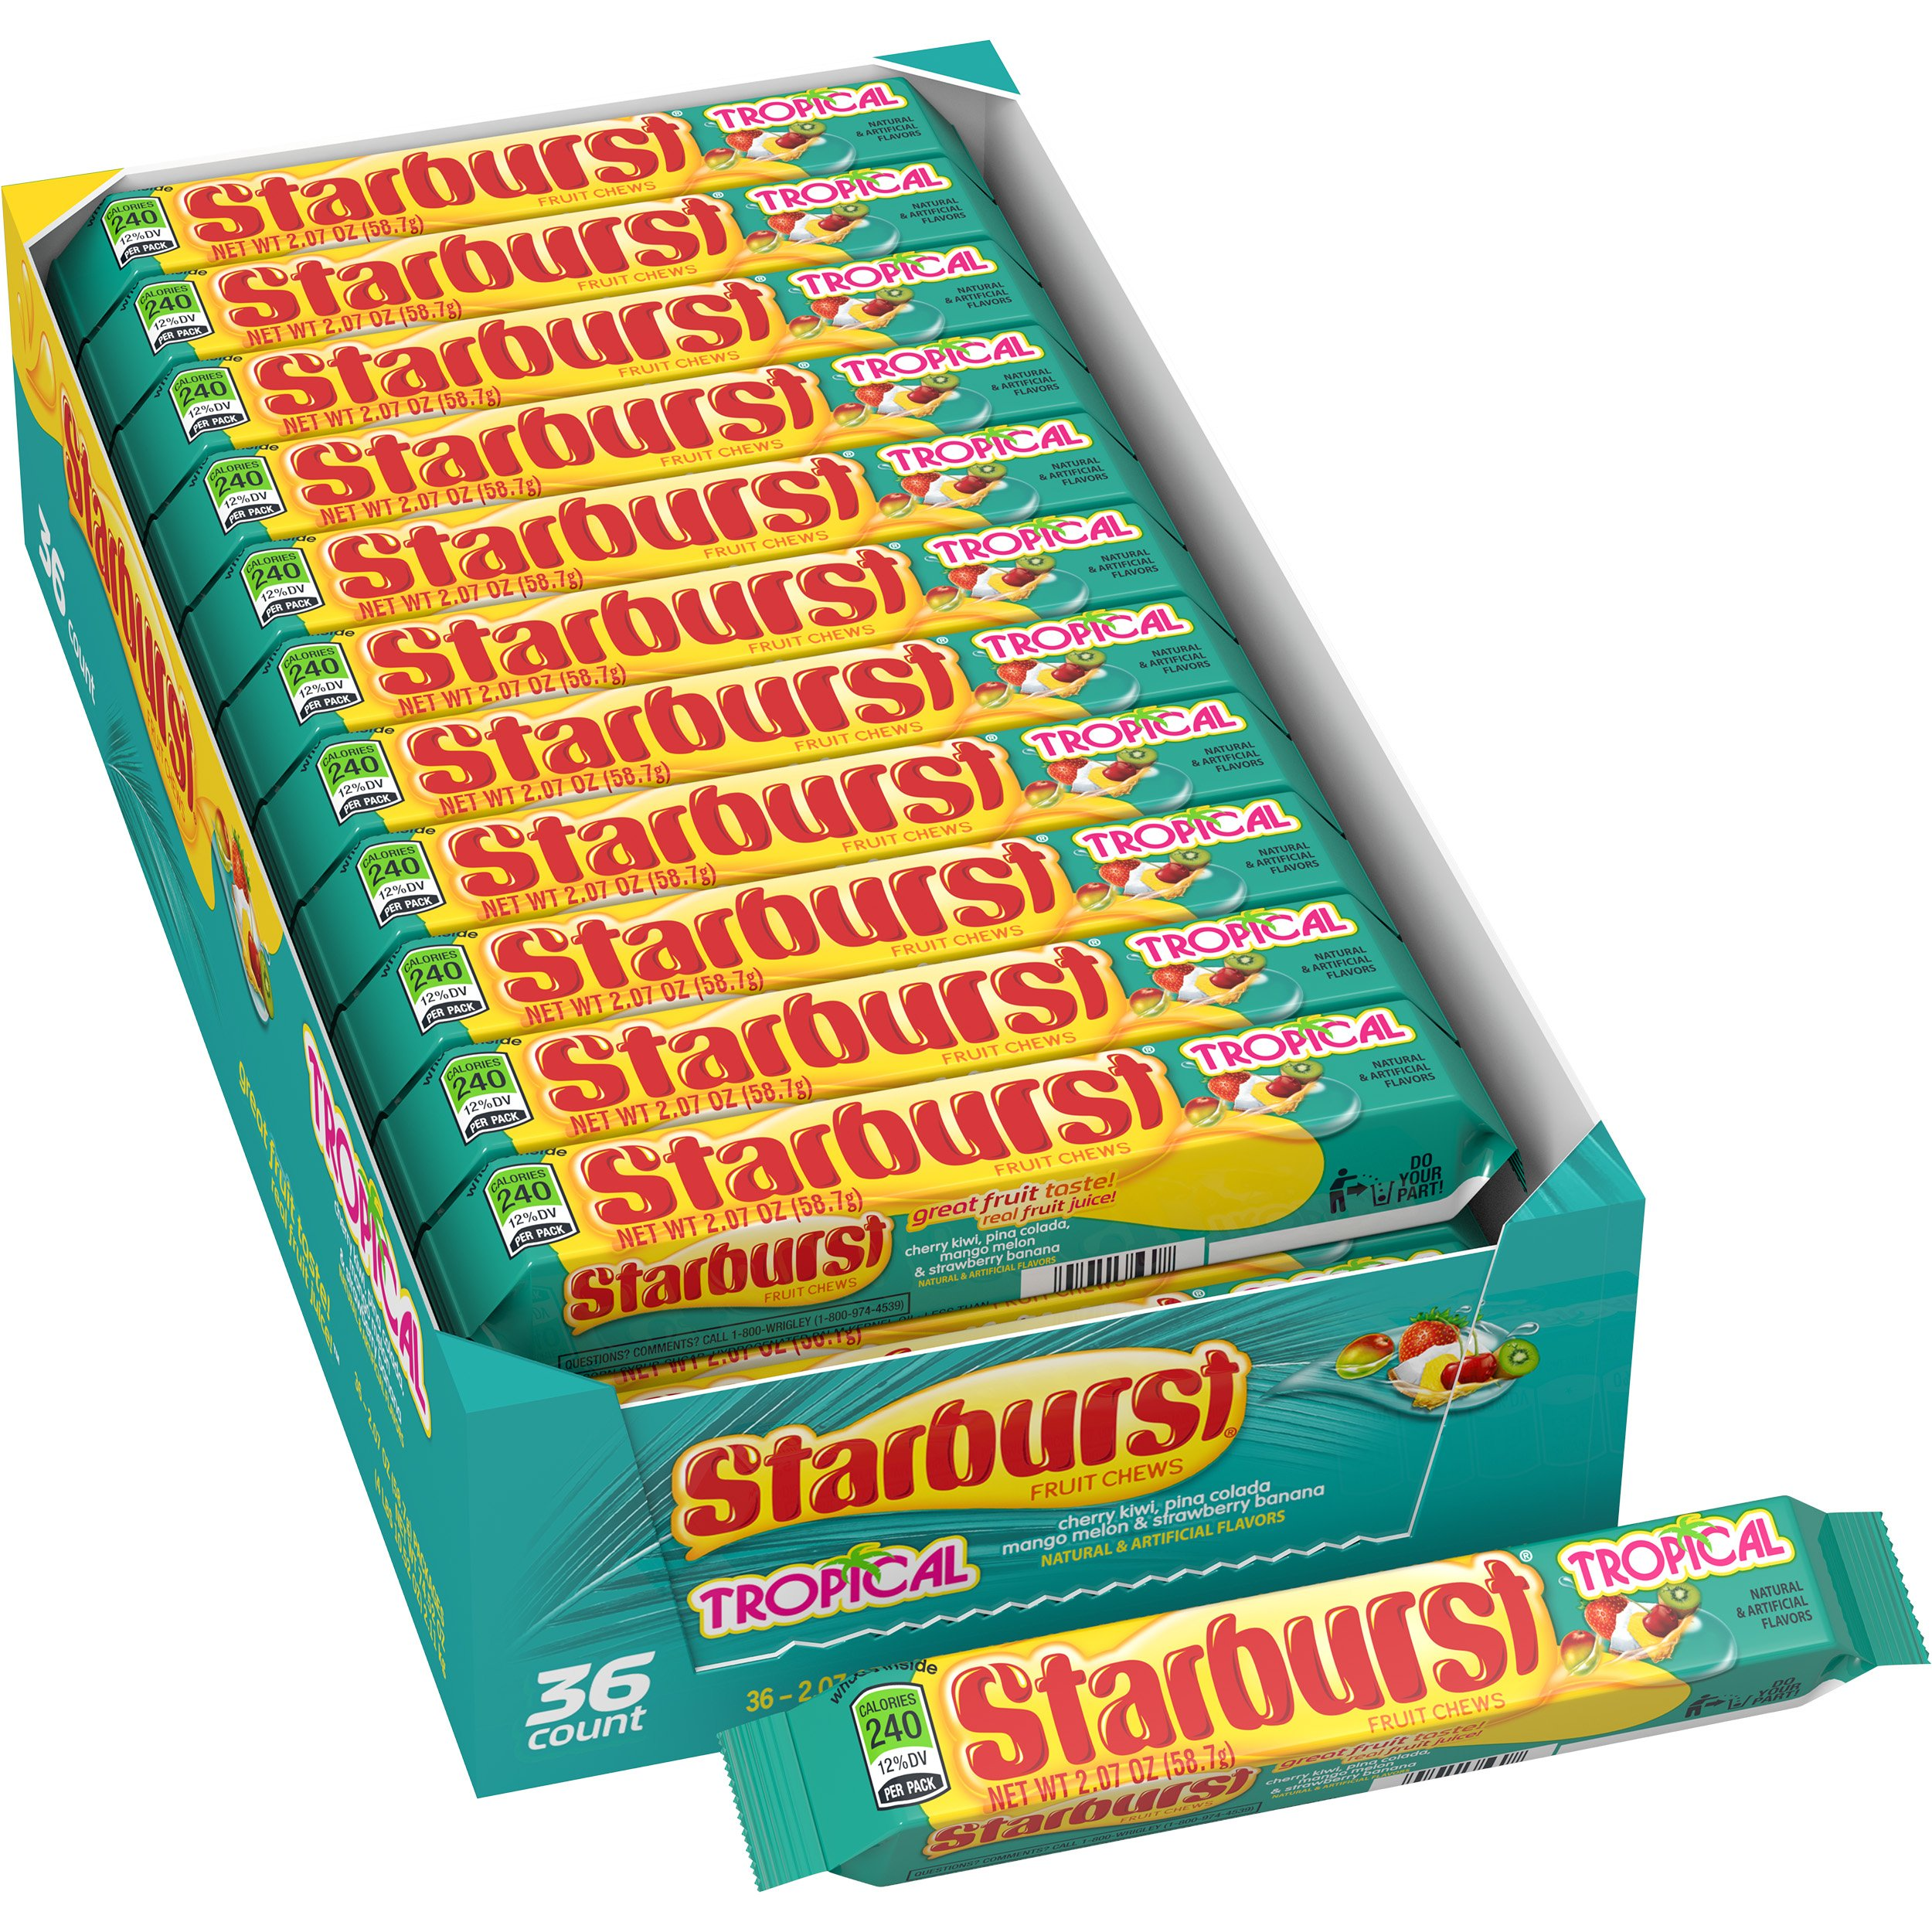 Starburst Tropical Fruit Chews Candy, 2.07 ounce (36 Single Packs) by Starburst